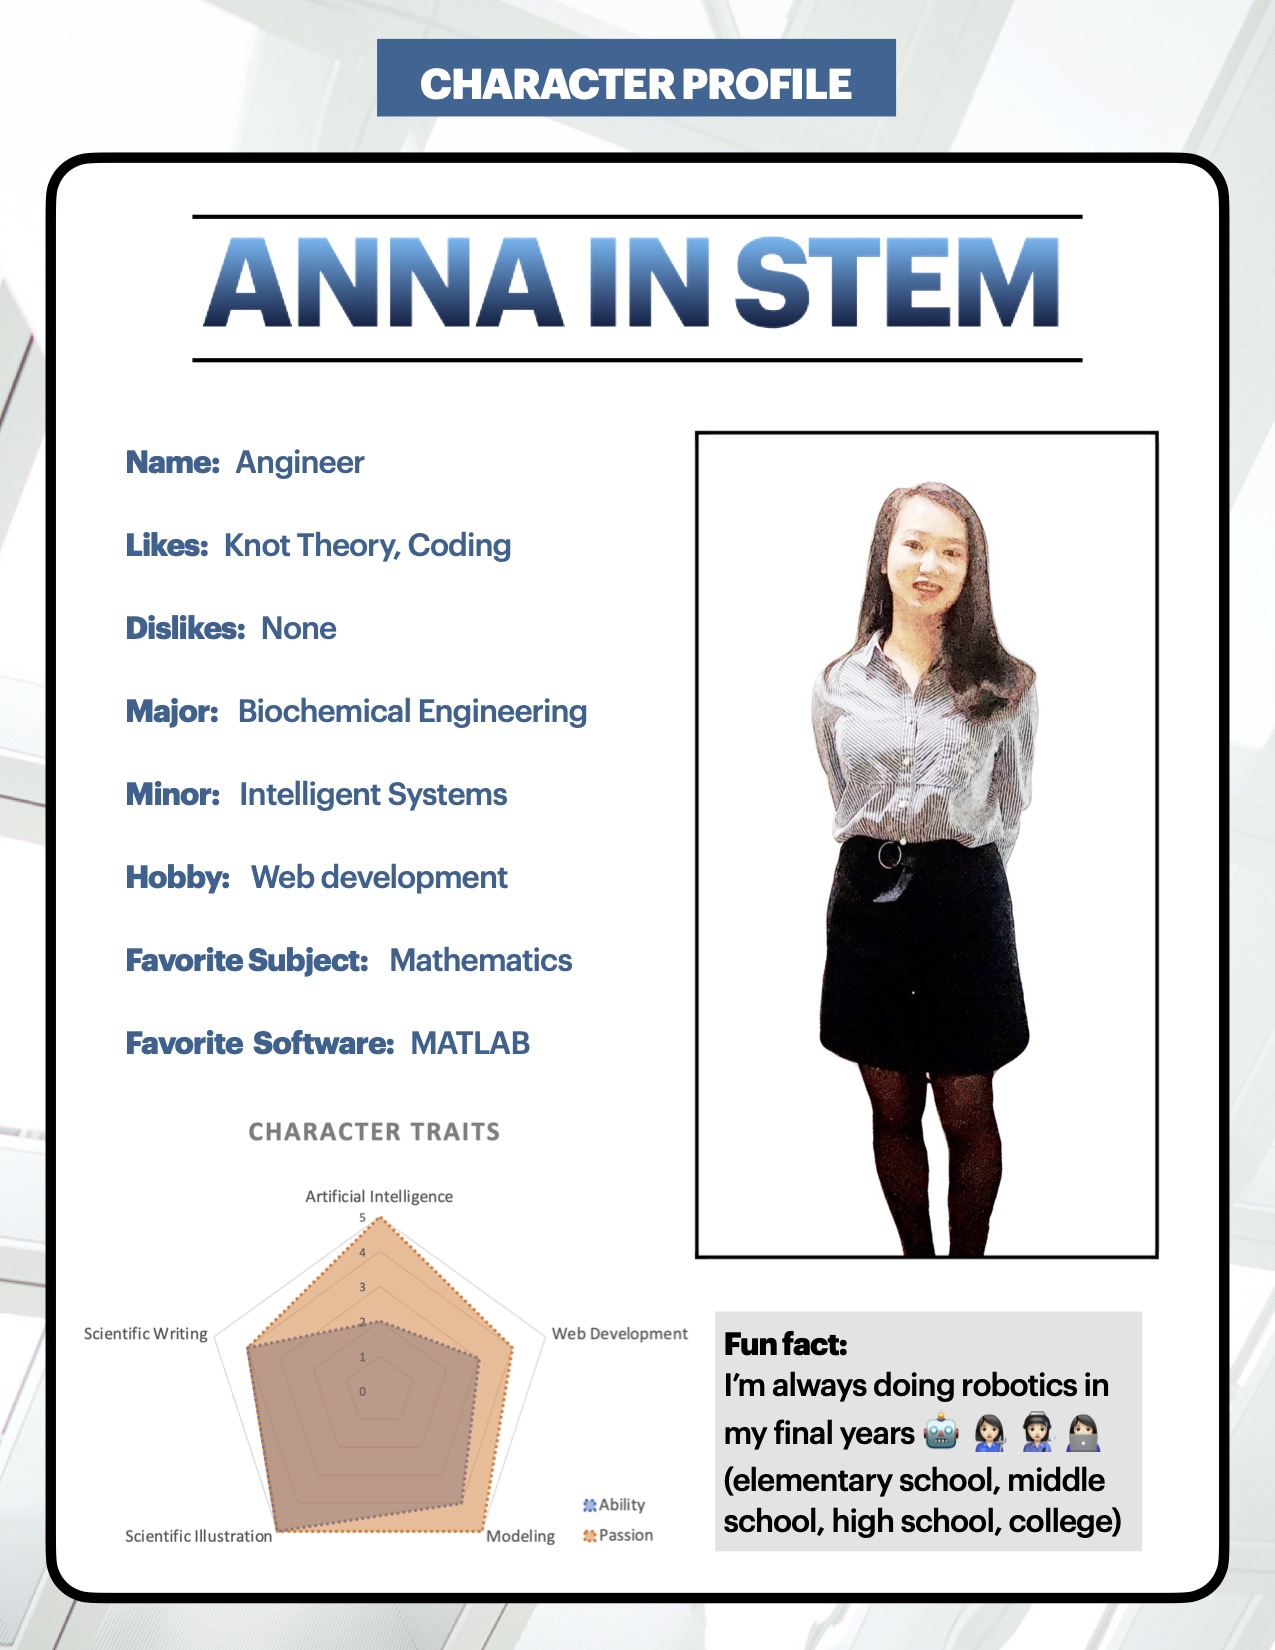 Anna in STEM - anime character profile